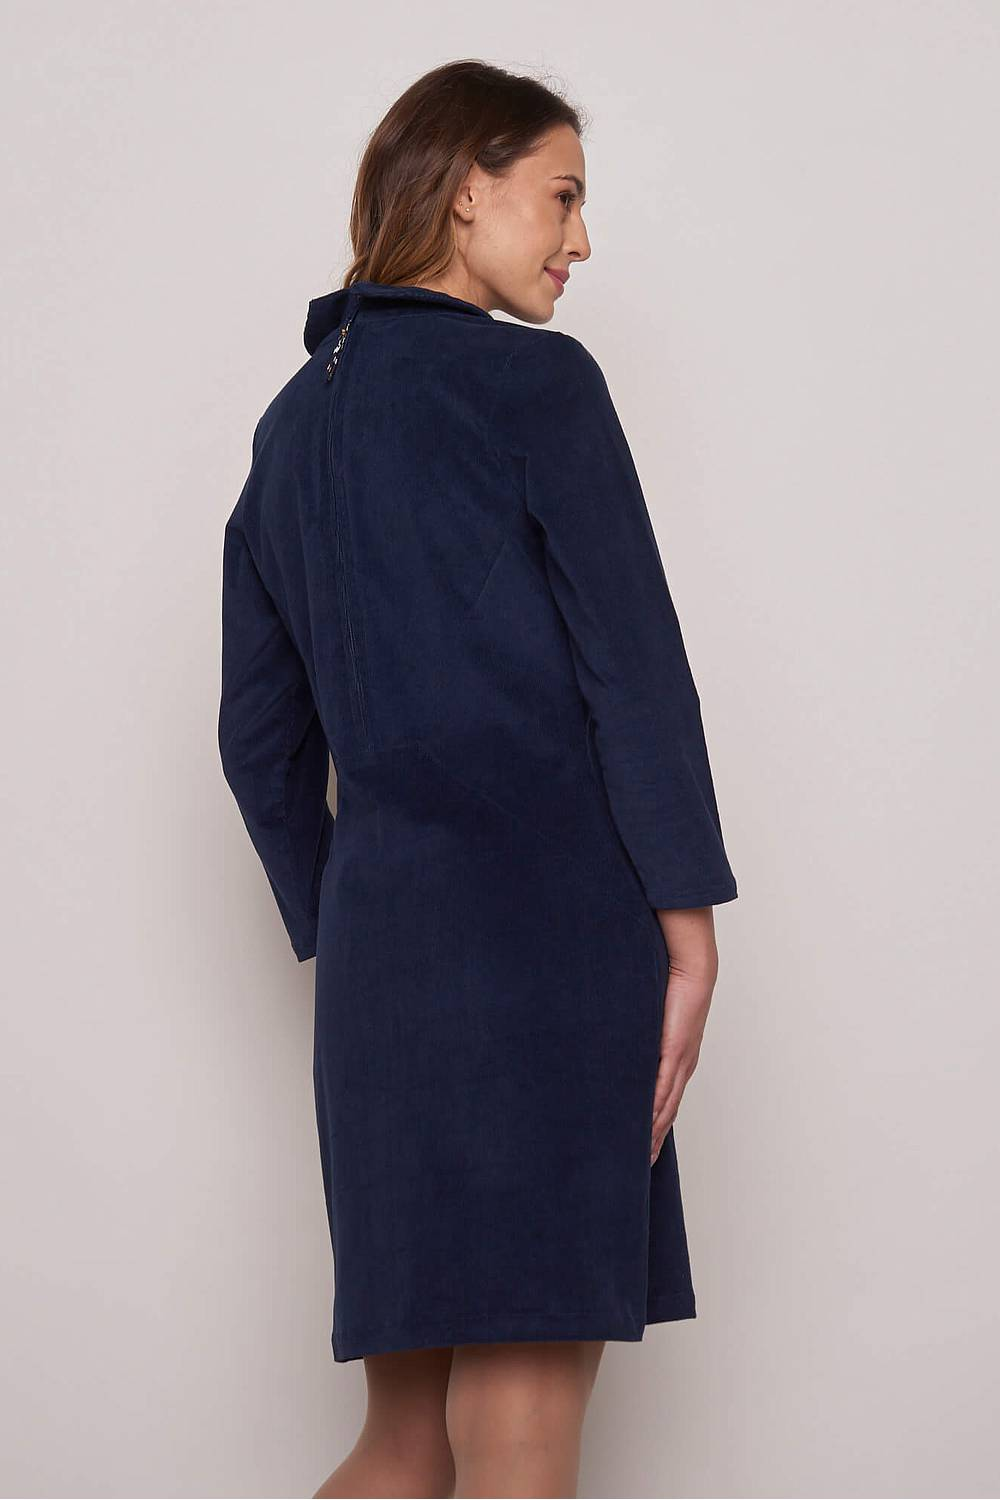 Cord Dress MAJIVI navy